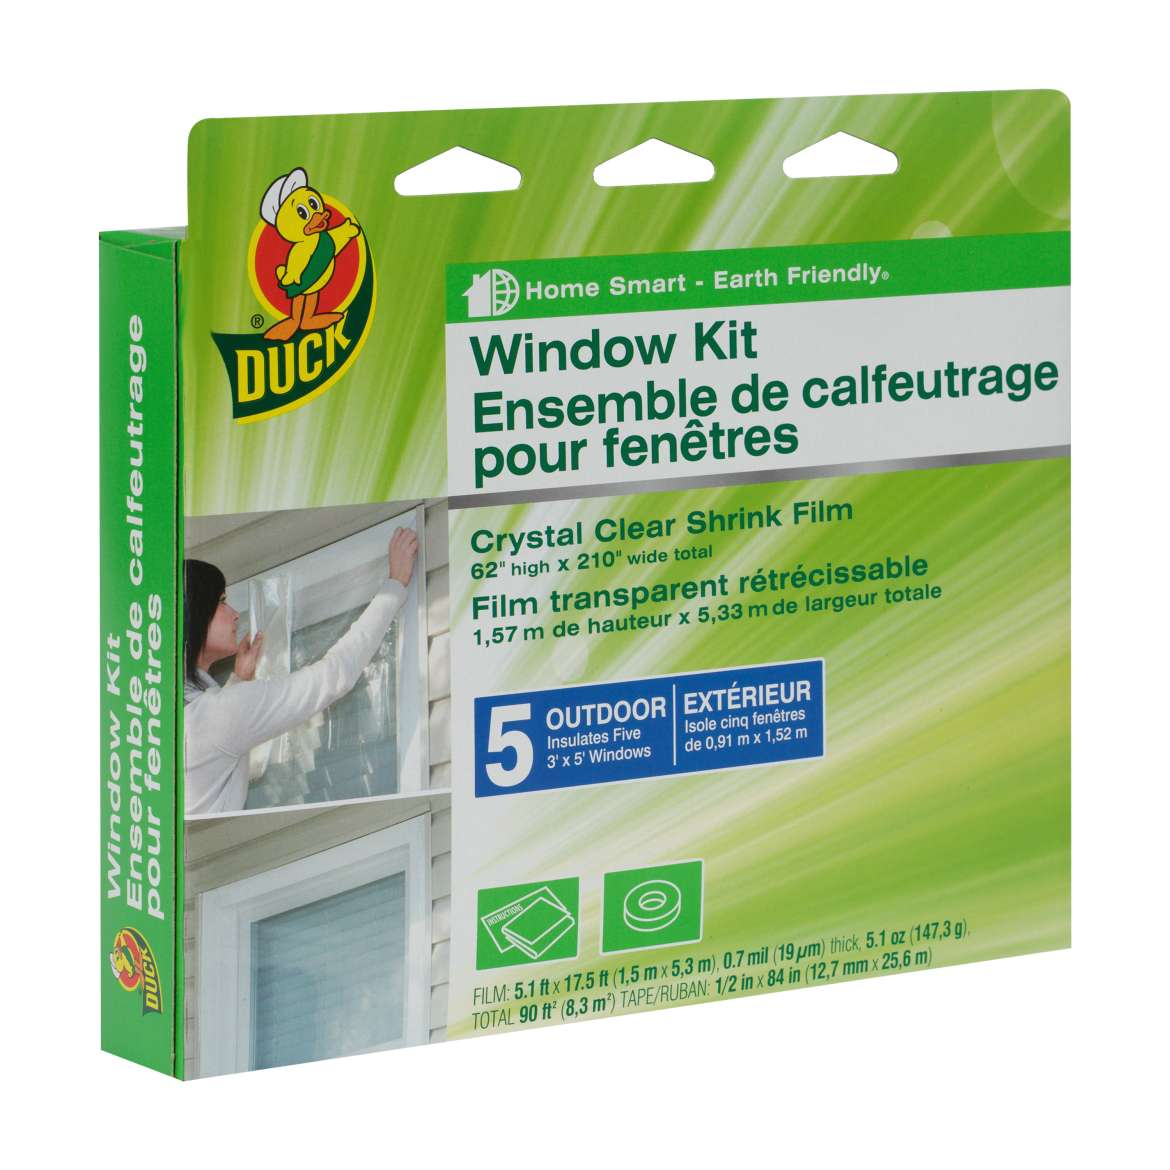 Duck® Brand Shrink Film Window Insulation Kit - Outdoor, 5 pk, 62 in. x 210 in. Image